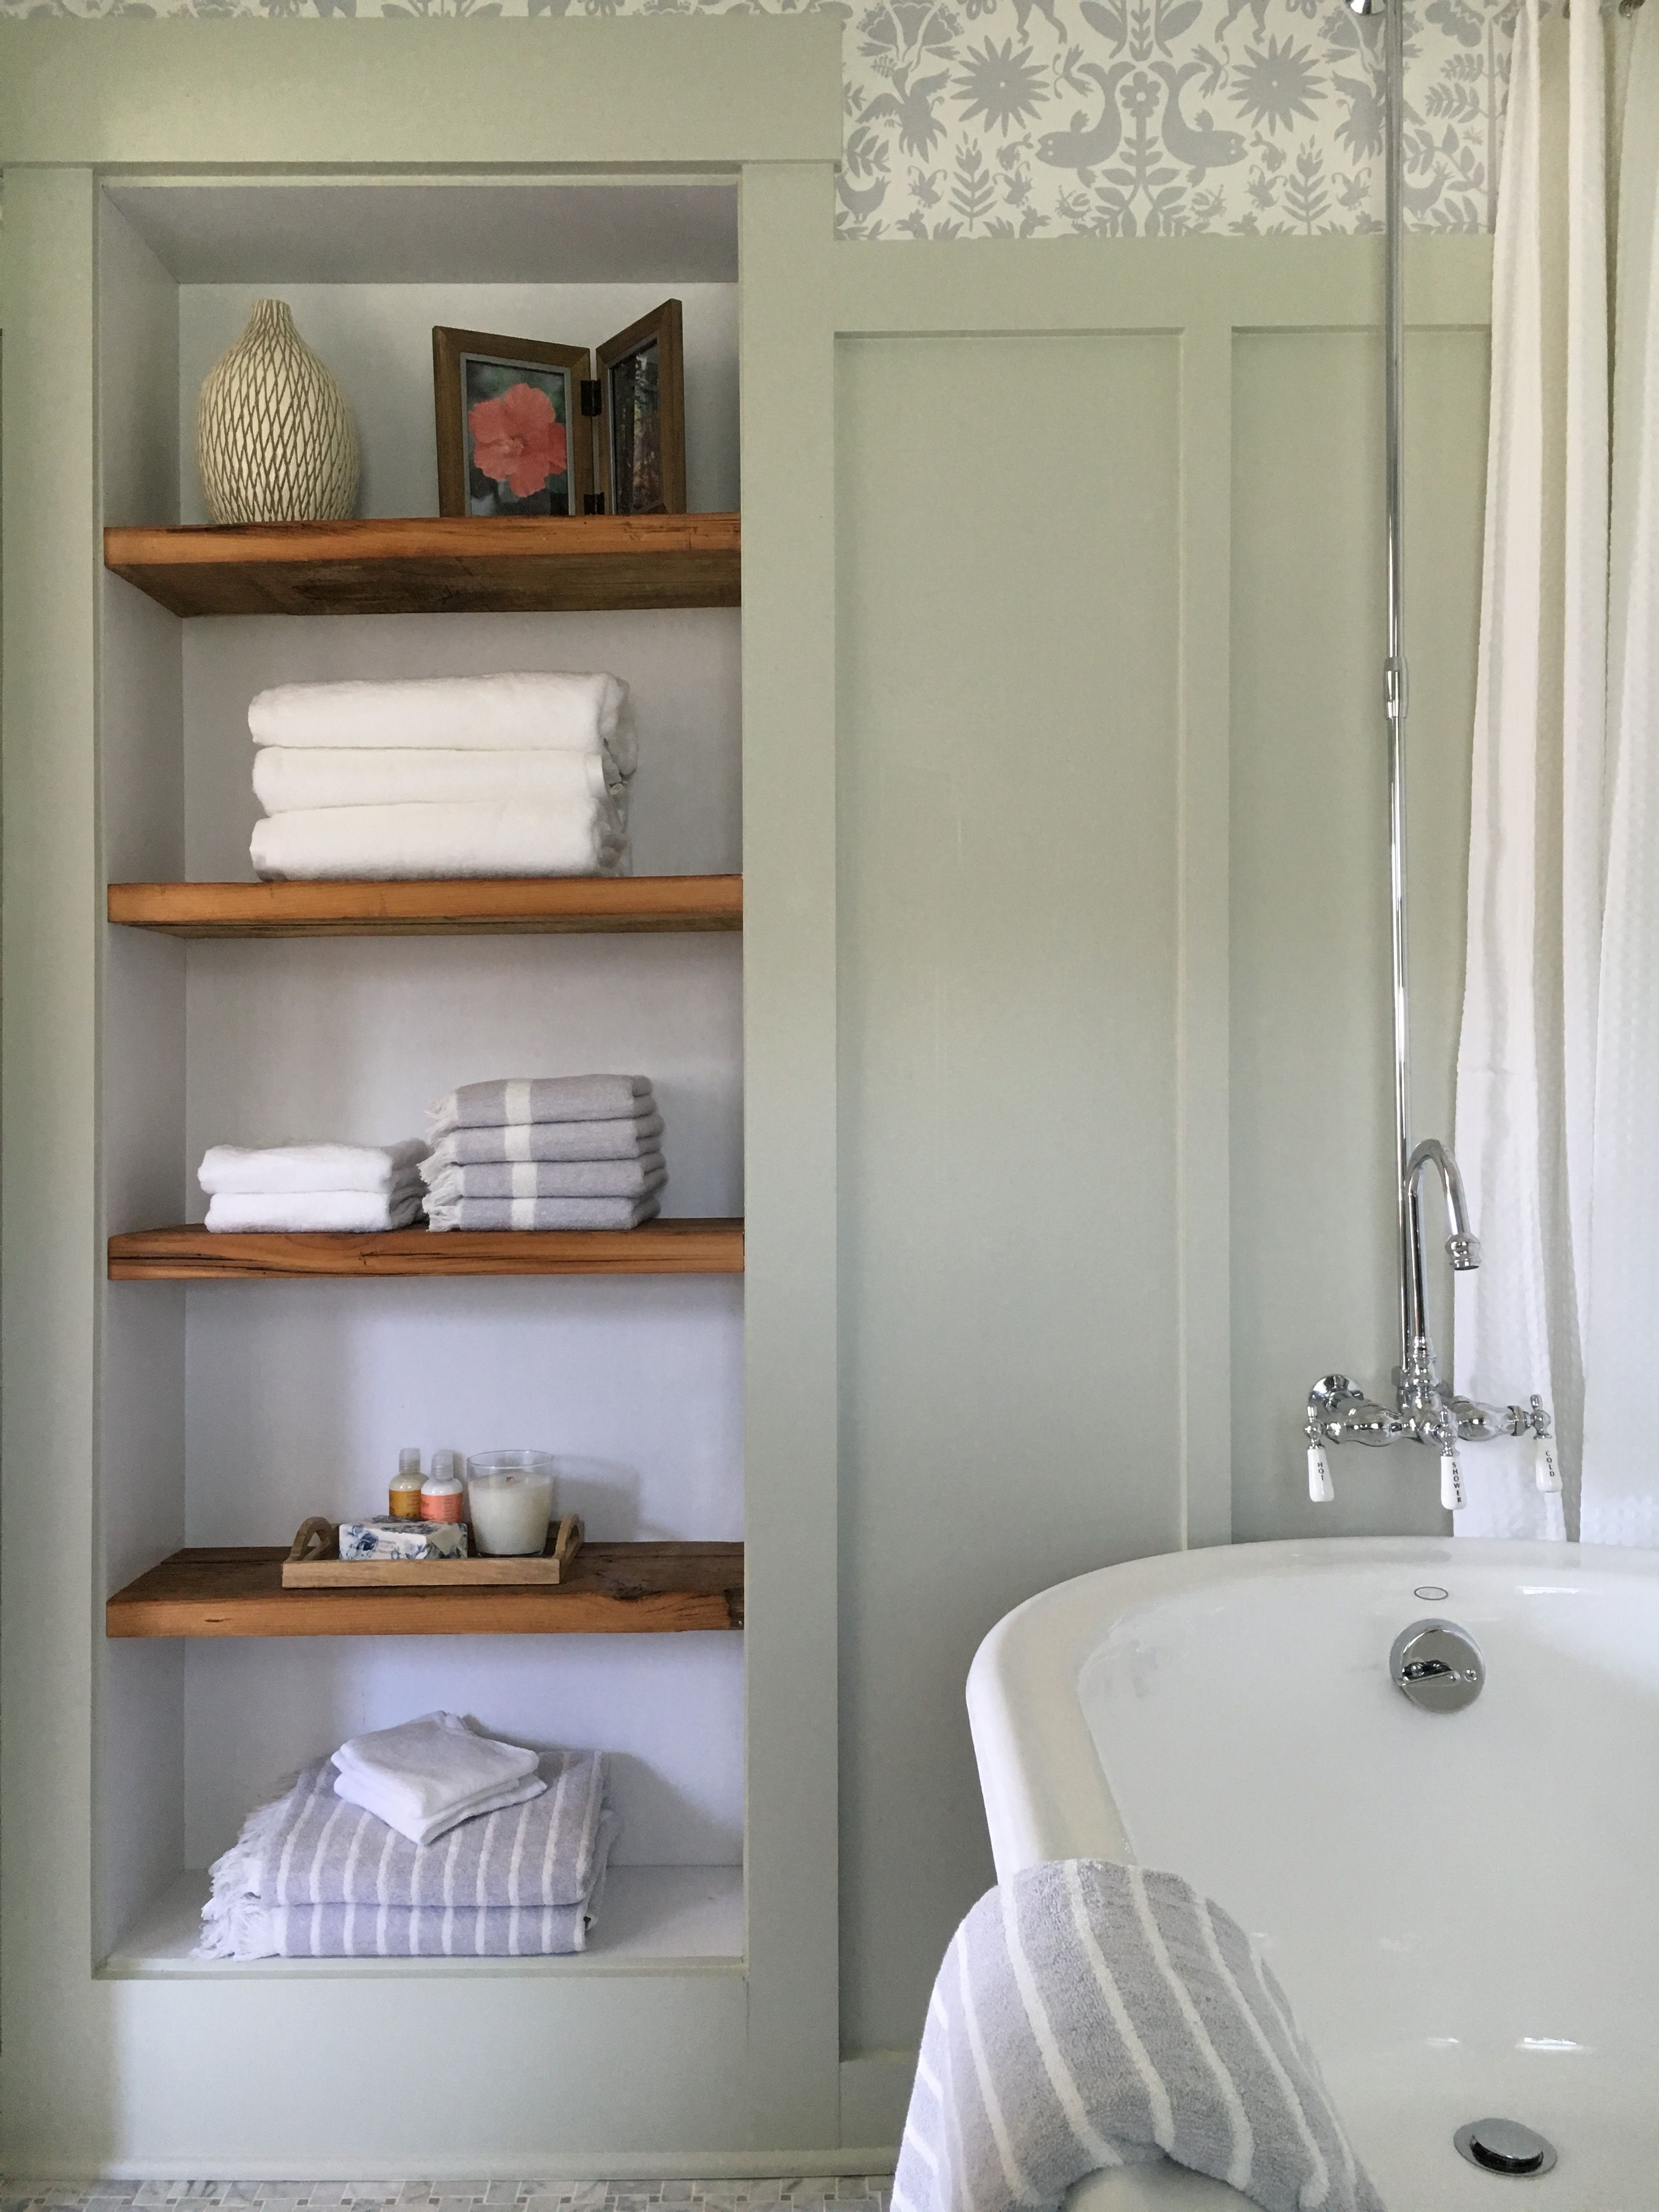 Recessed Bathroom Shelving With Reclaimed Wood Stone House